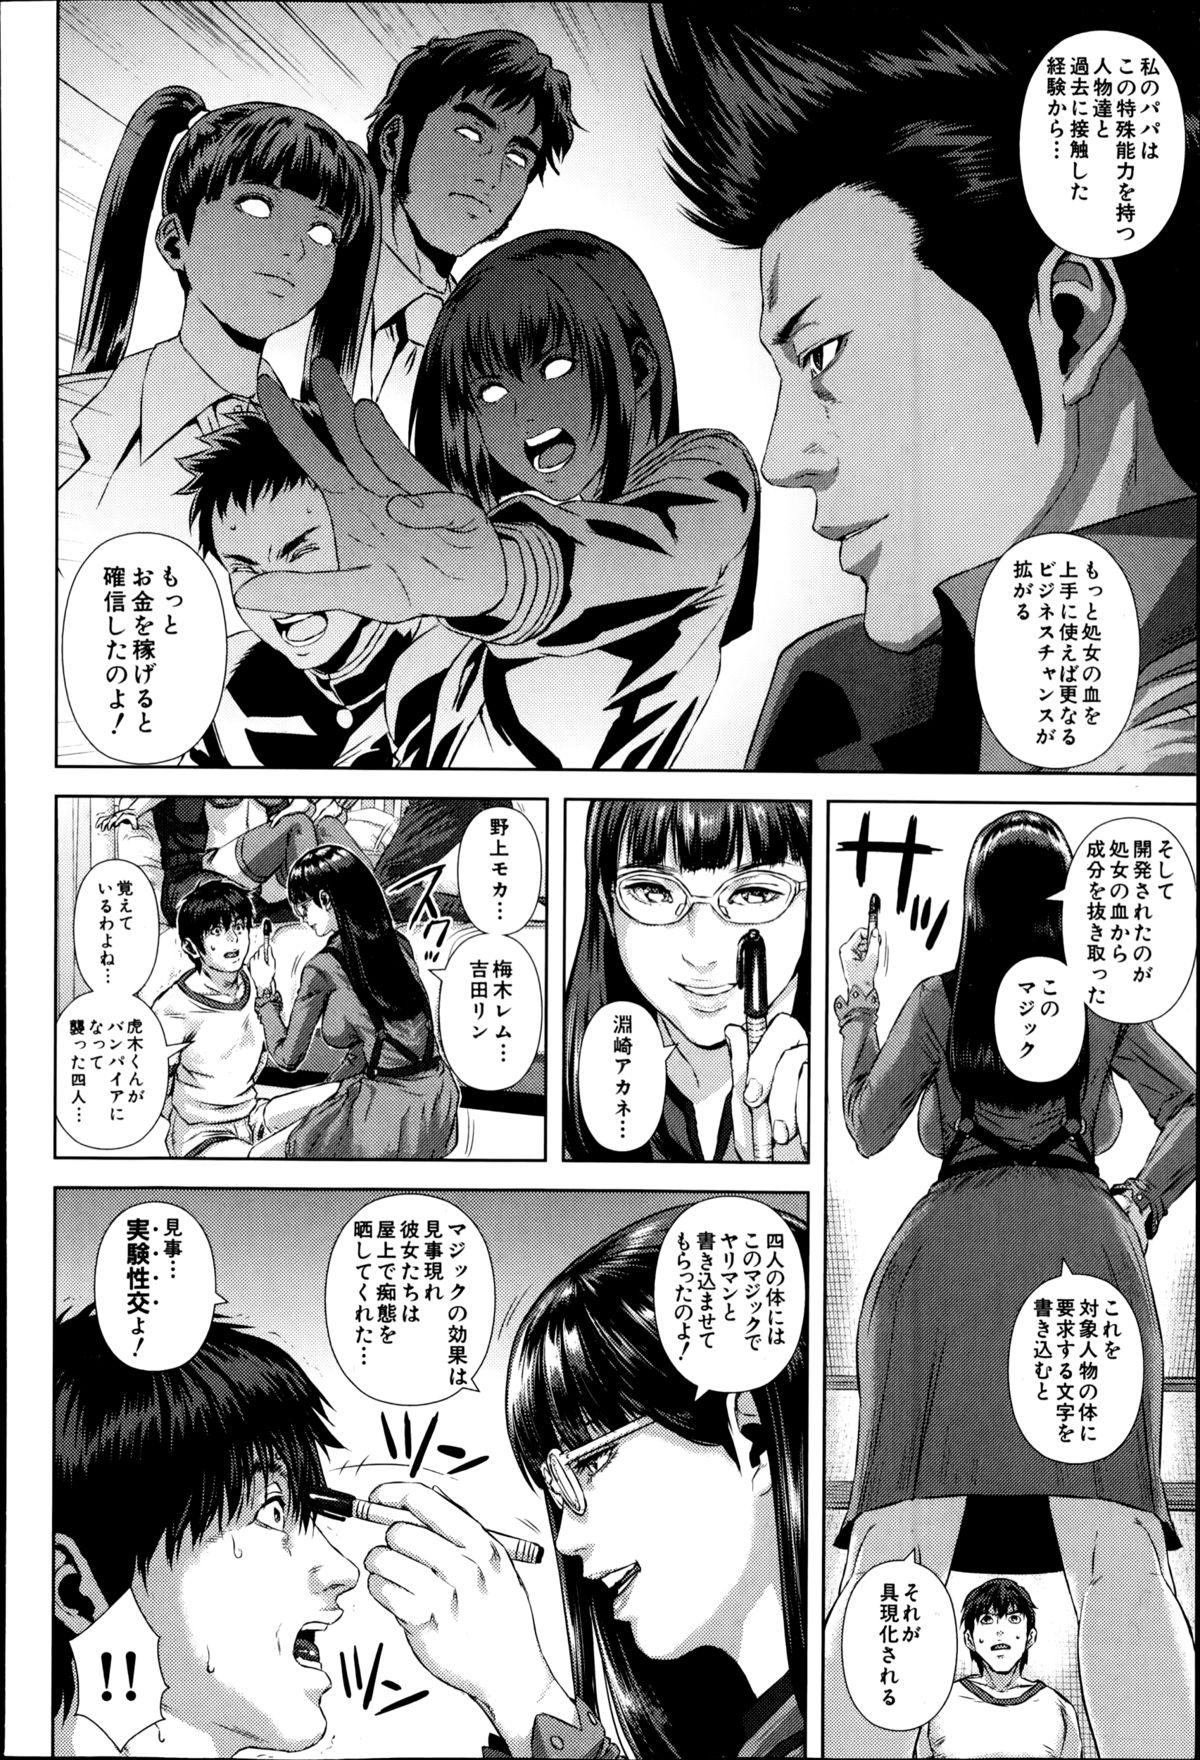 BUSTER COMIC 2014-09 111